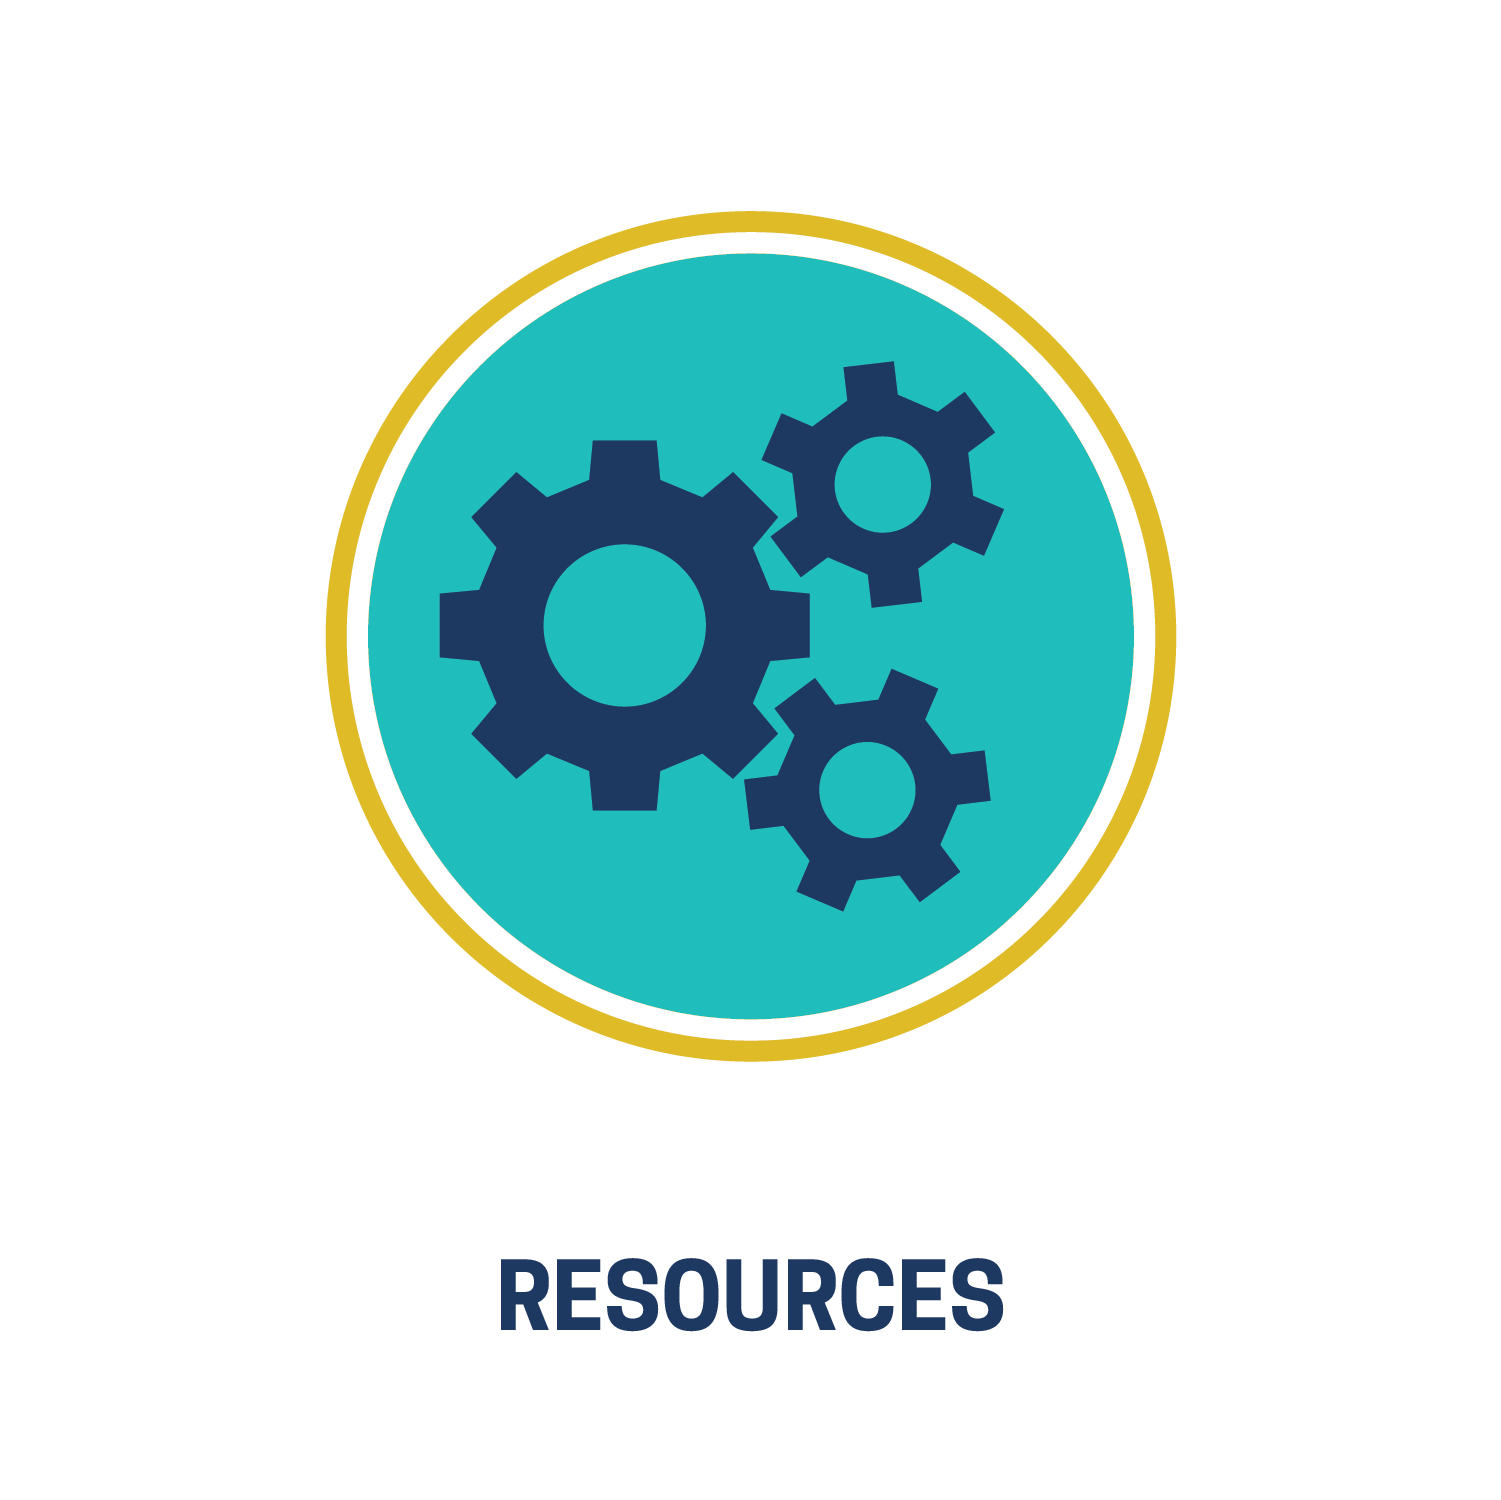 Icons_RESOURCES.png